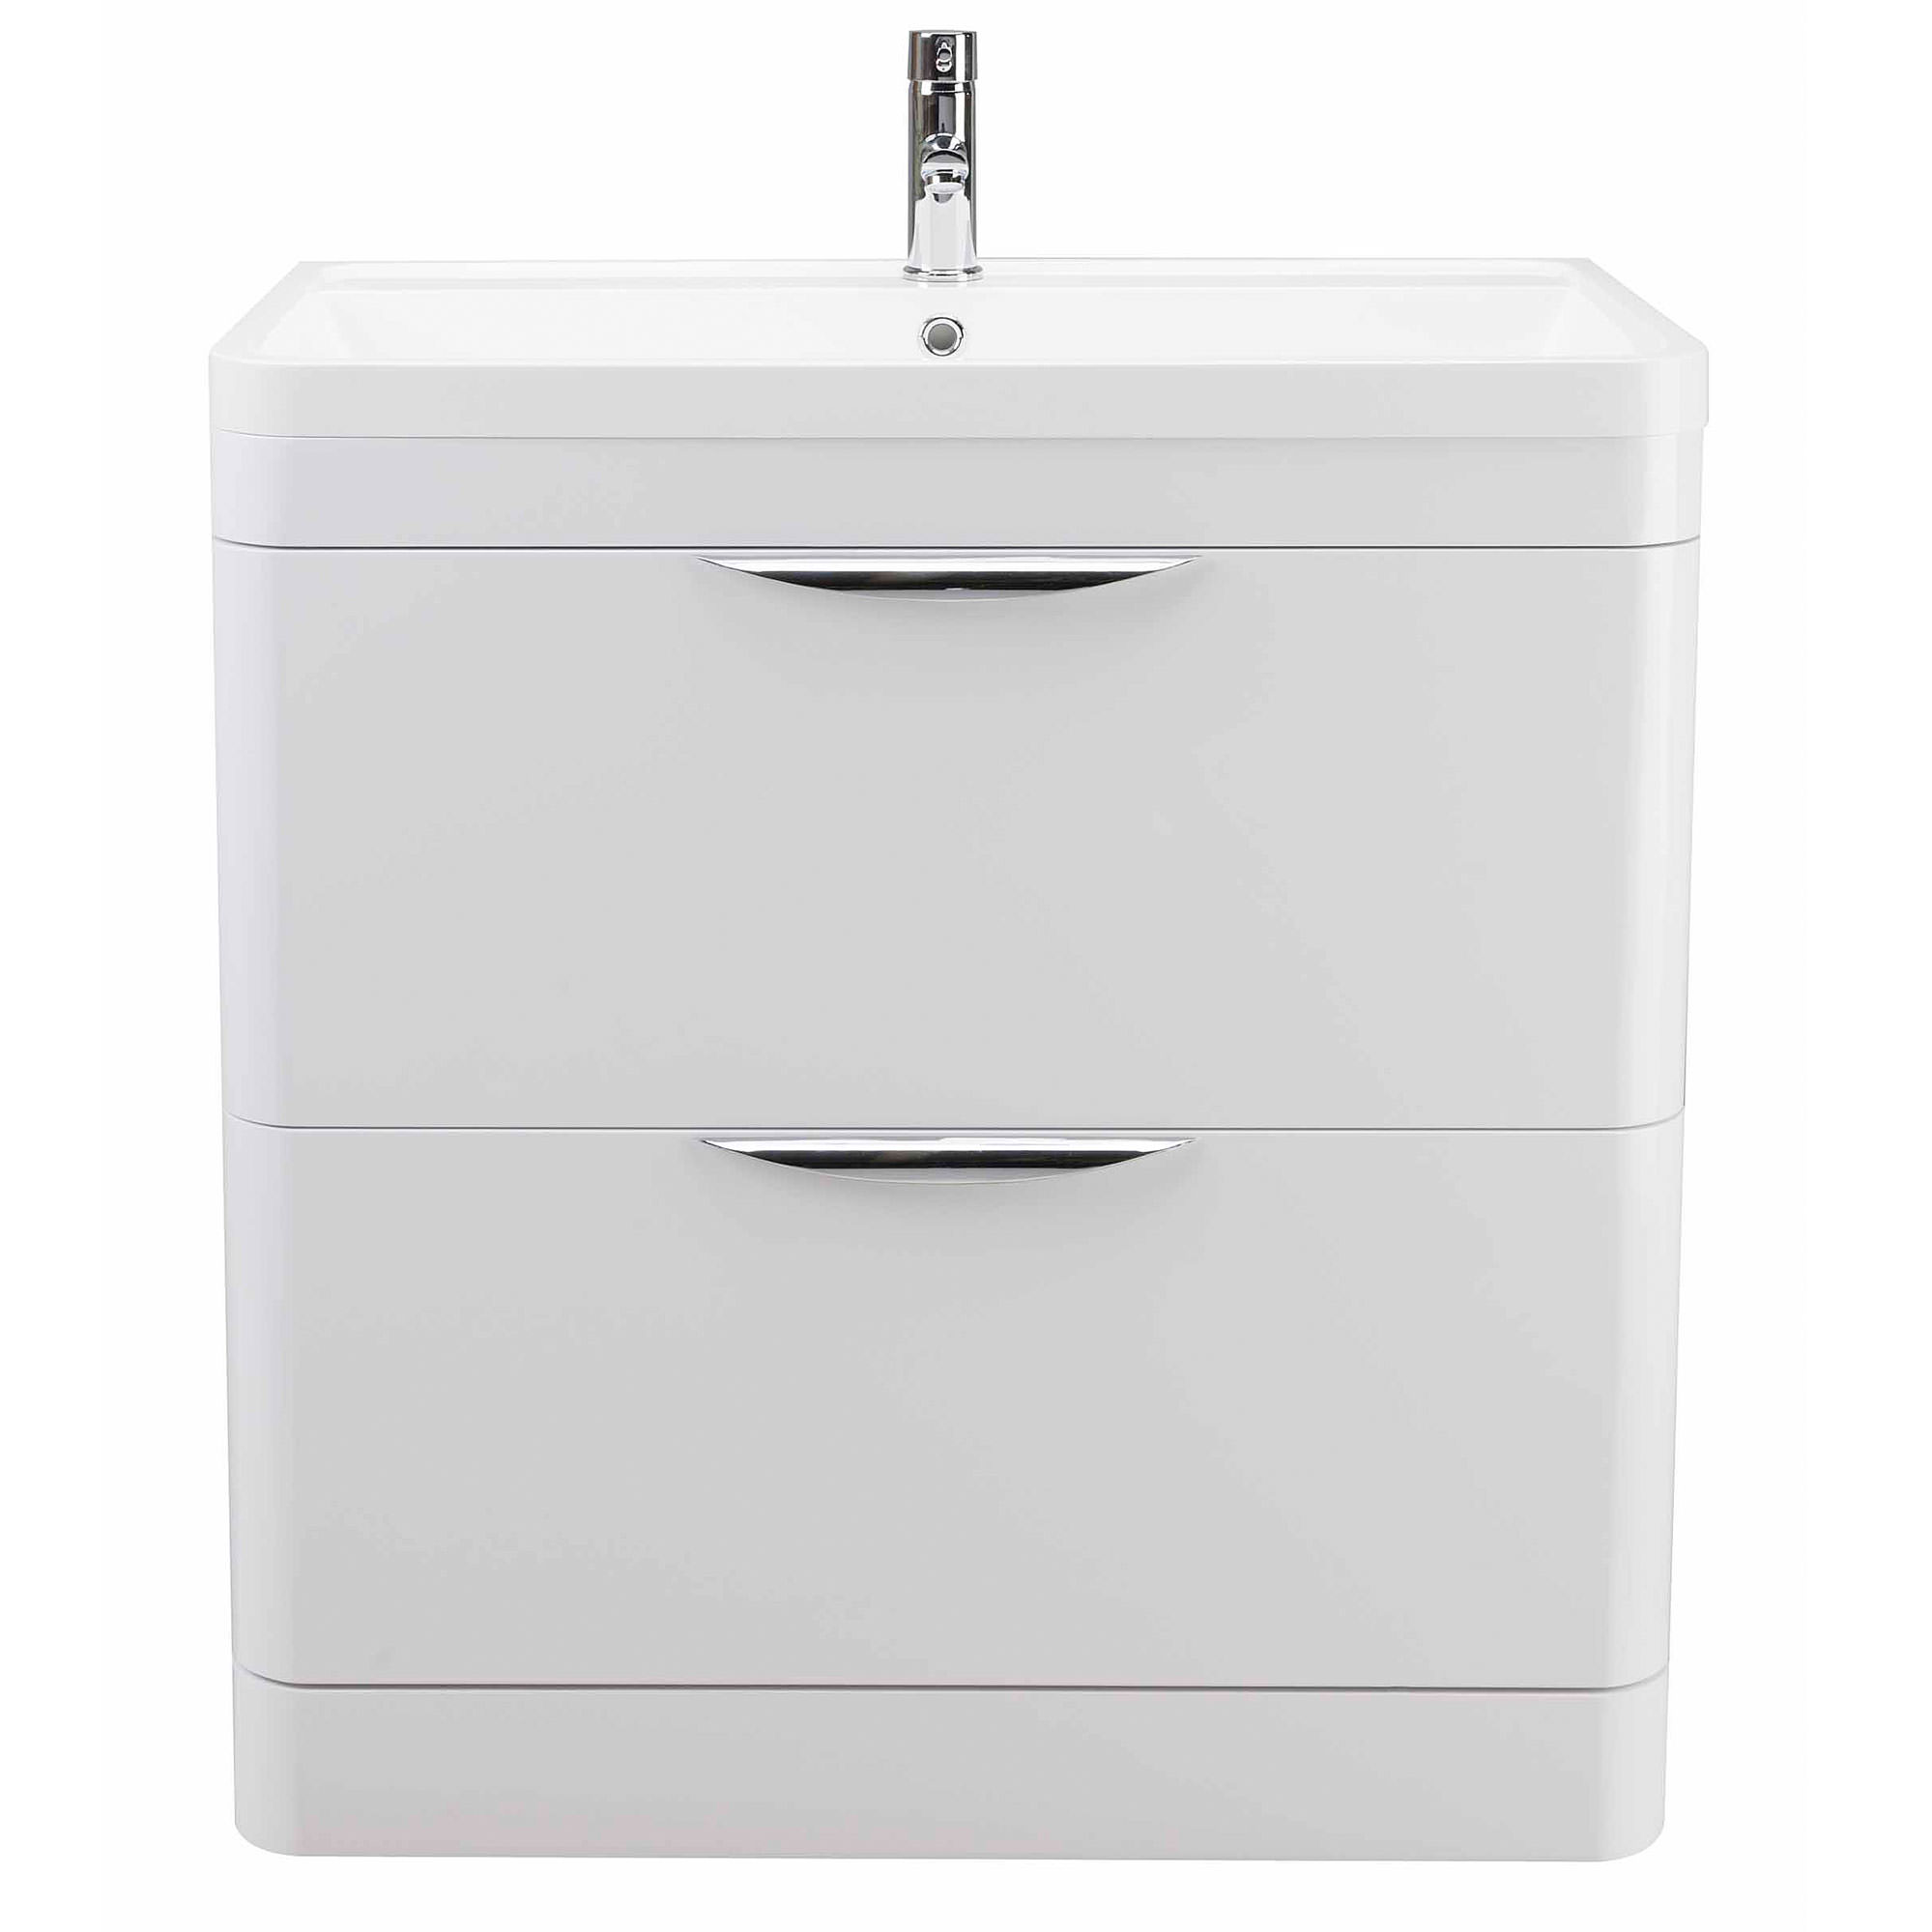 Bathroom Floor Cabinets with Drawers in white